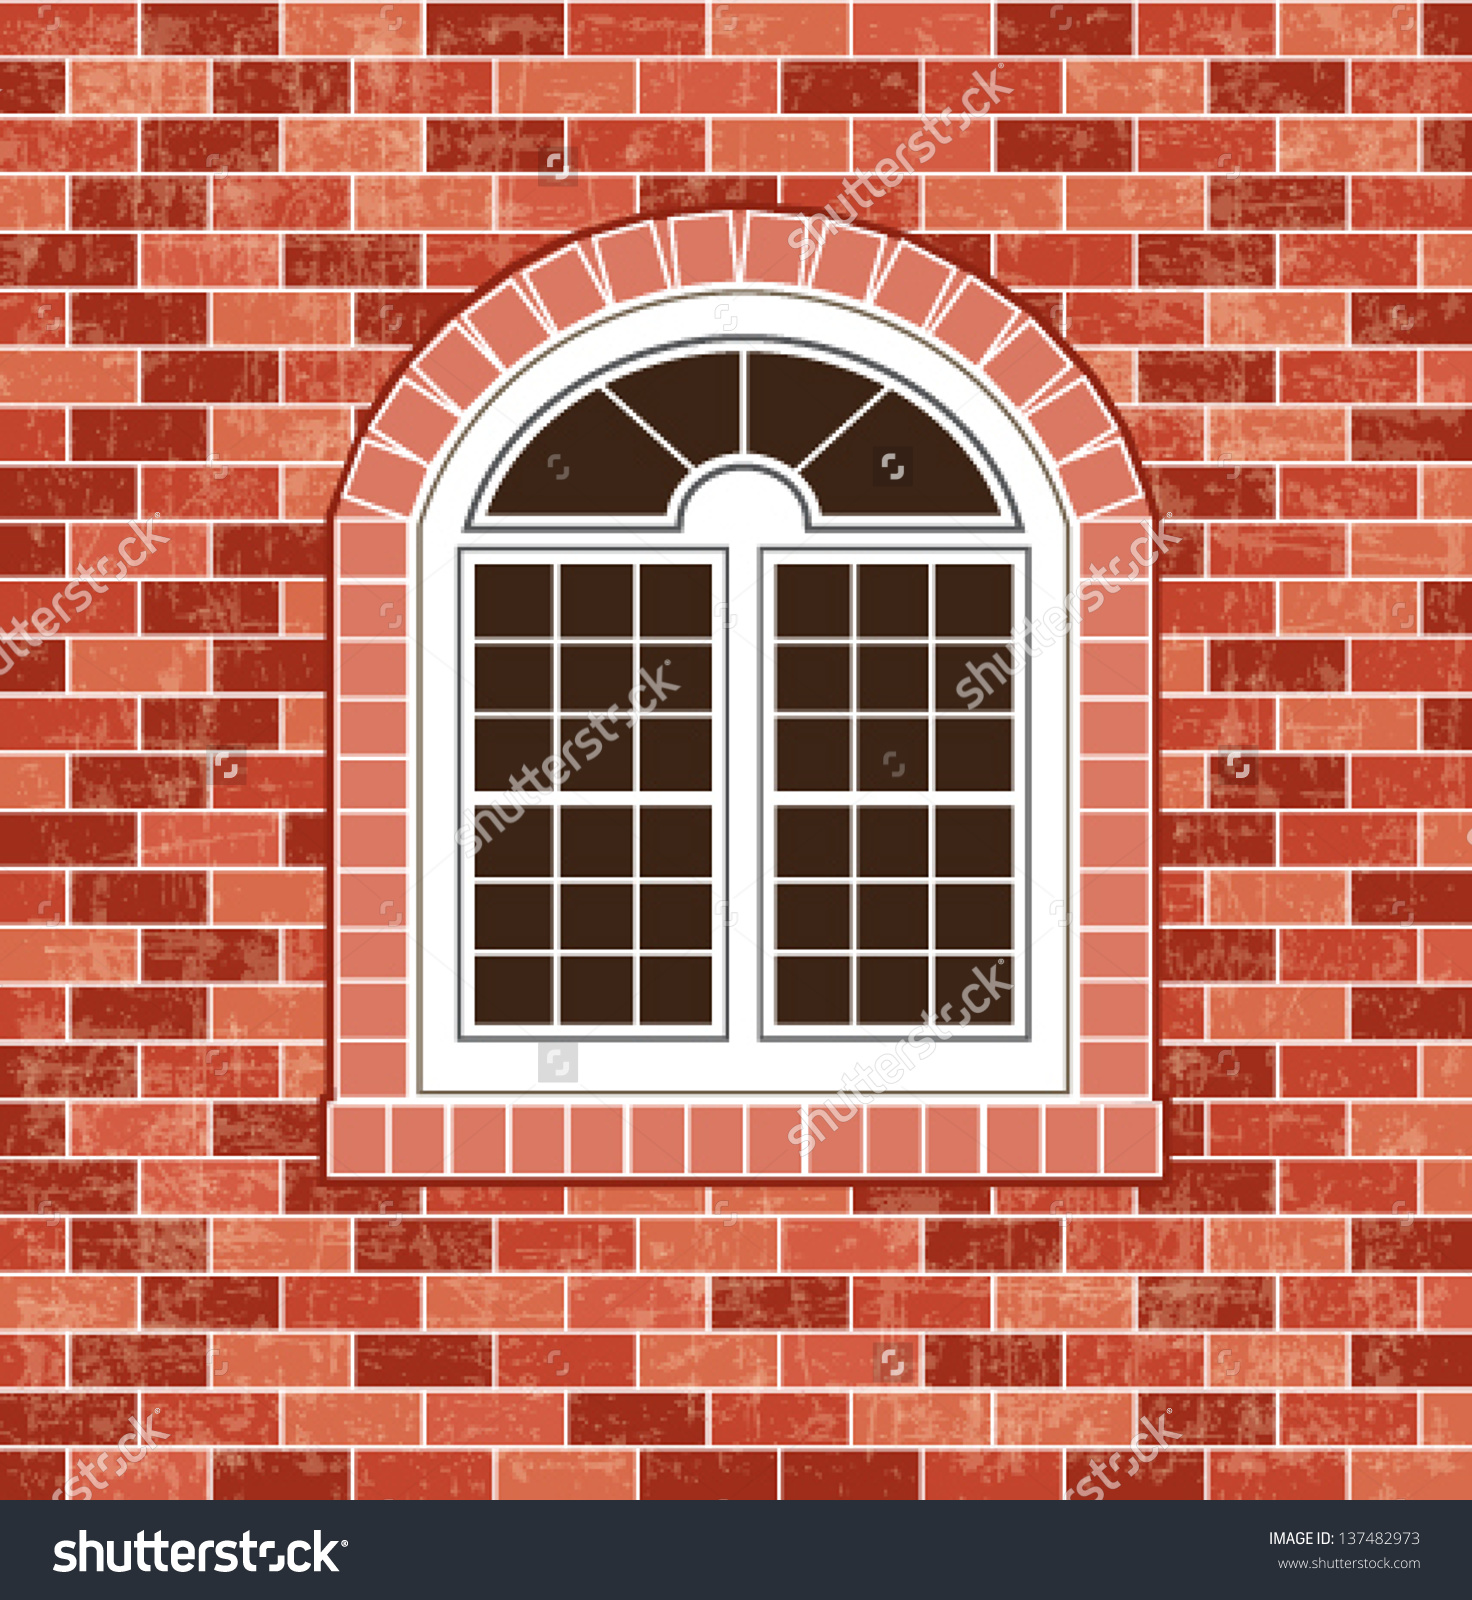 House craft printables windows and door clipart picture library House craft printables windows and door clipart - ClipartFest picture library